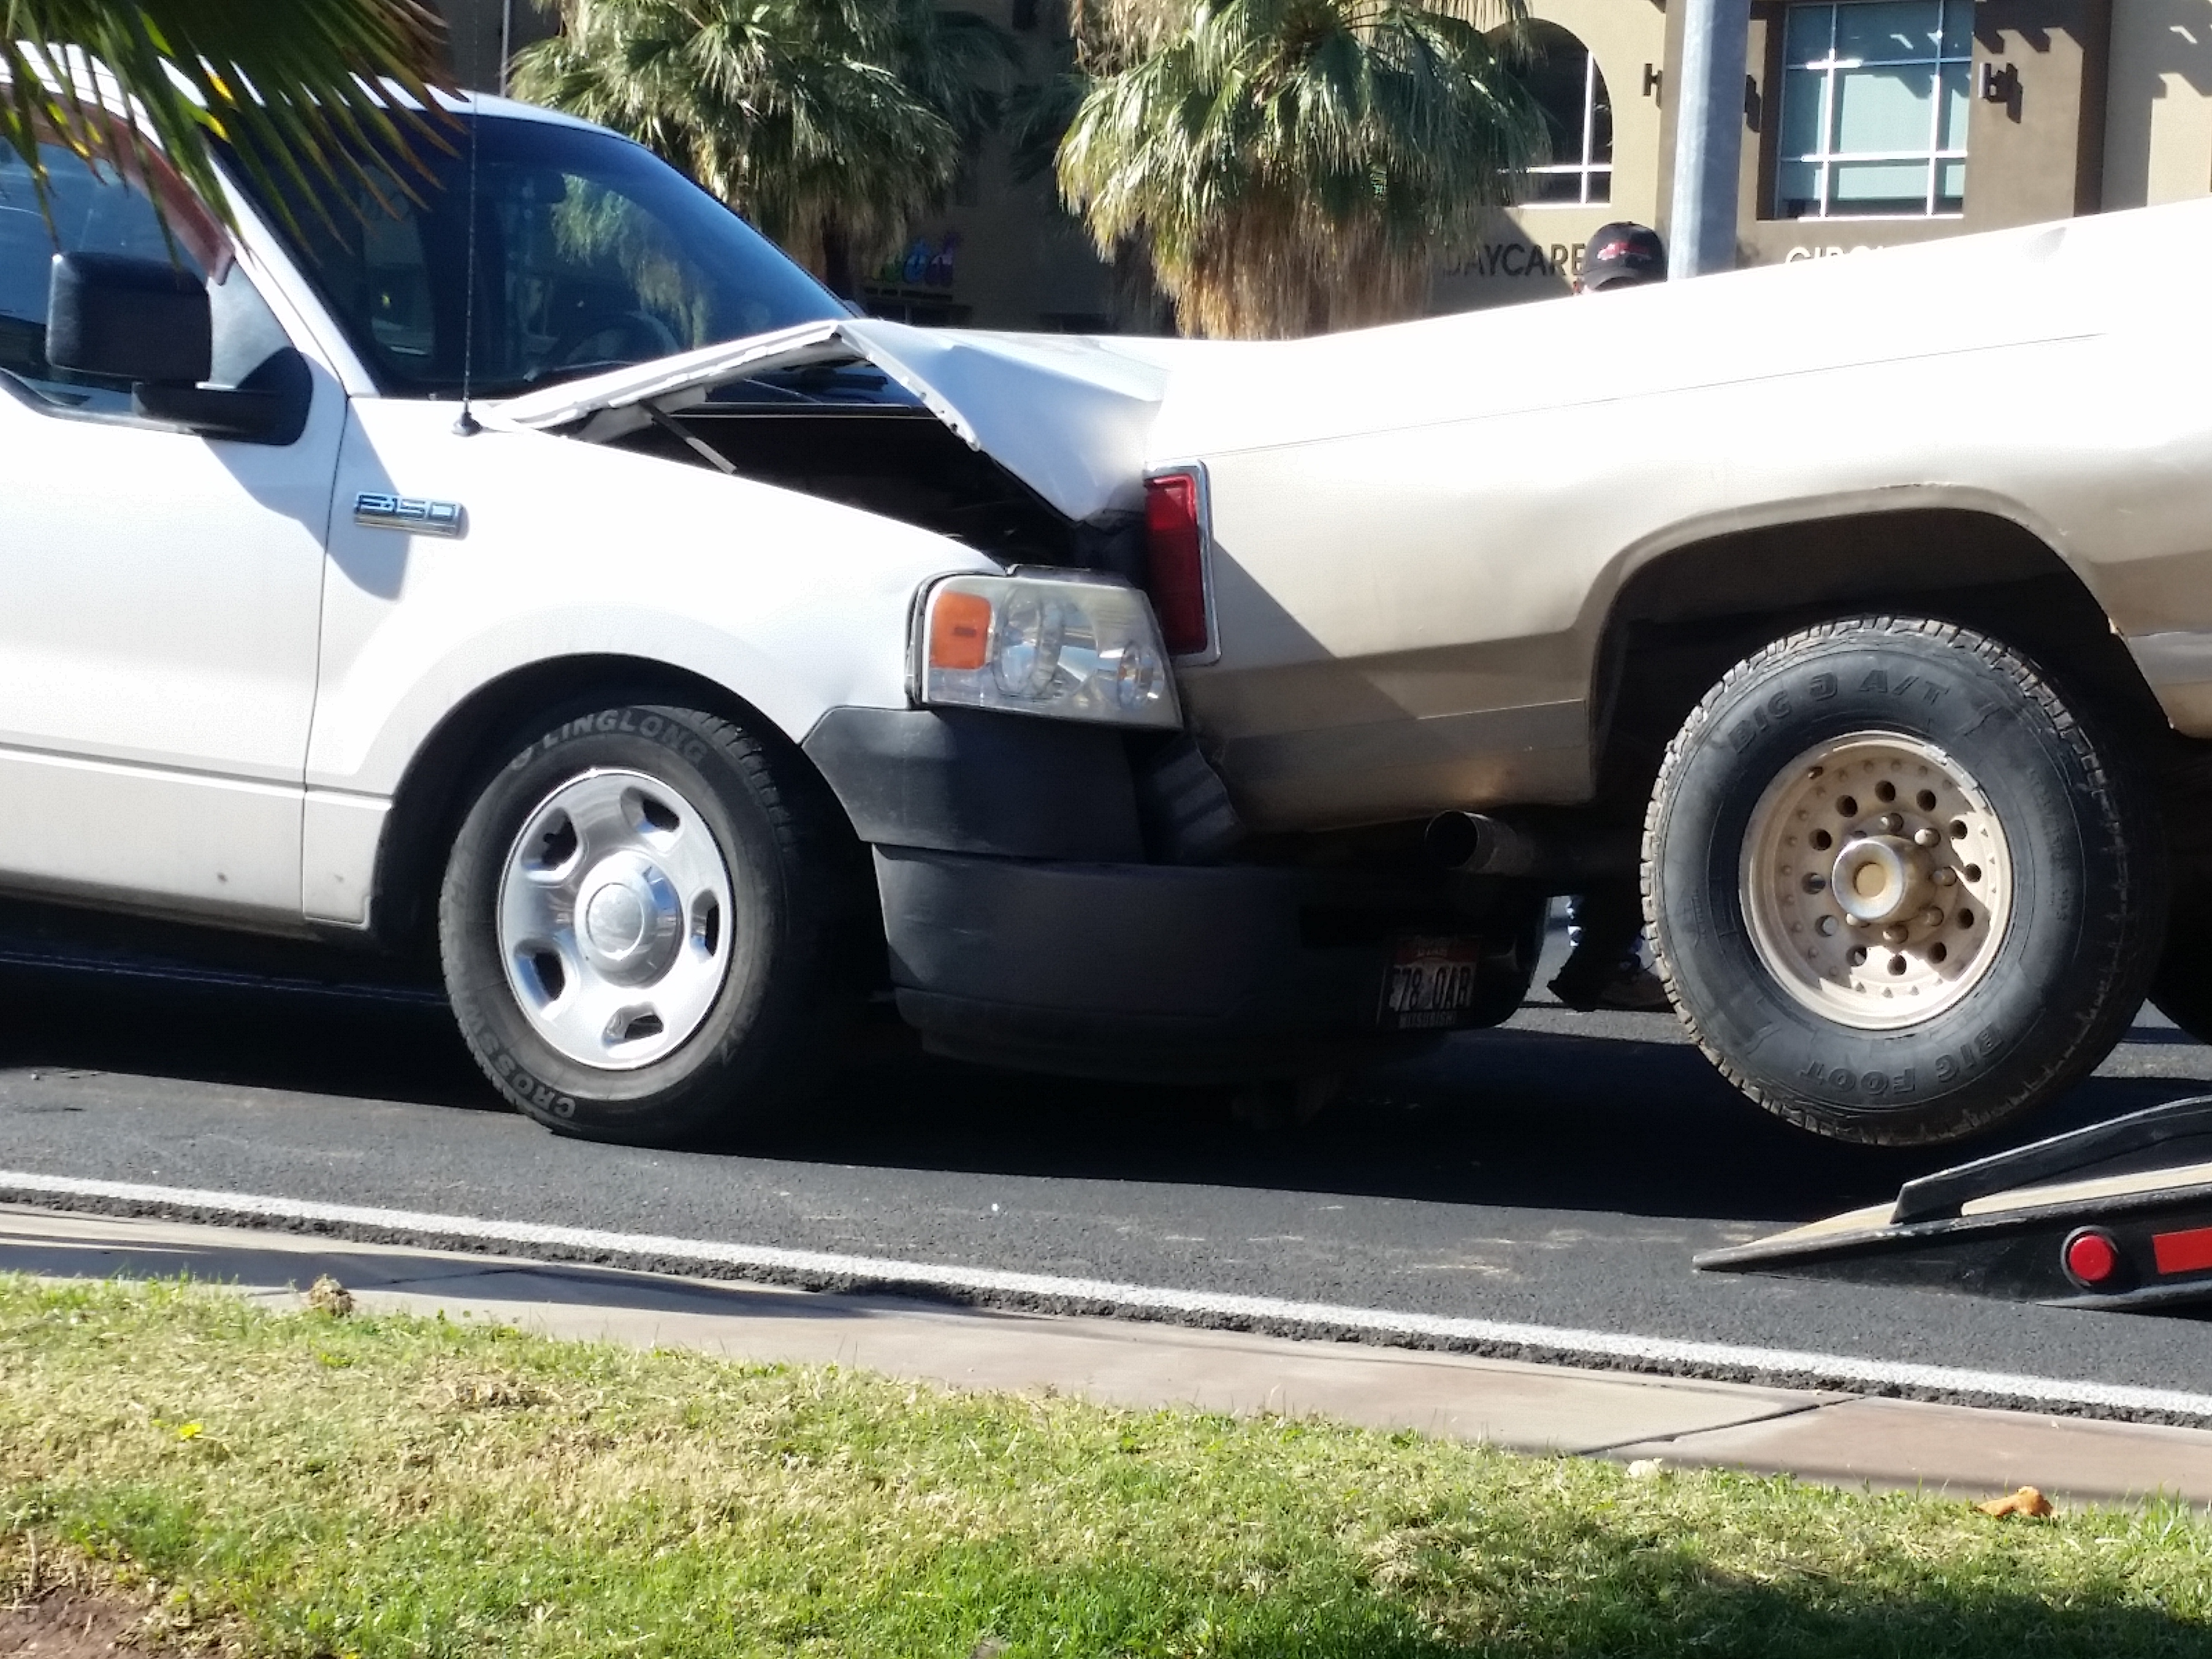 A rear-end crash on Bluff Street Tuesday morning damaged two trucks and left the drivers with minor injuries, St. George, Utah, Oct. 25, 2016 | Photo by Julie Applegate, St. George News